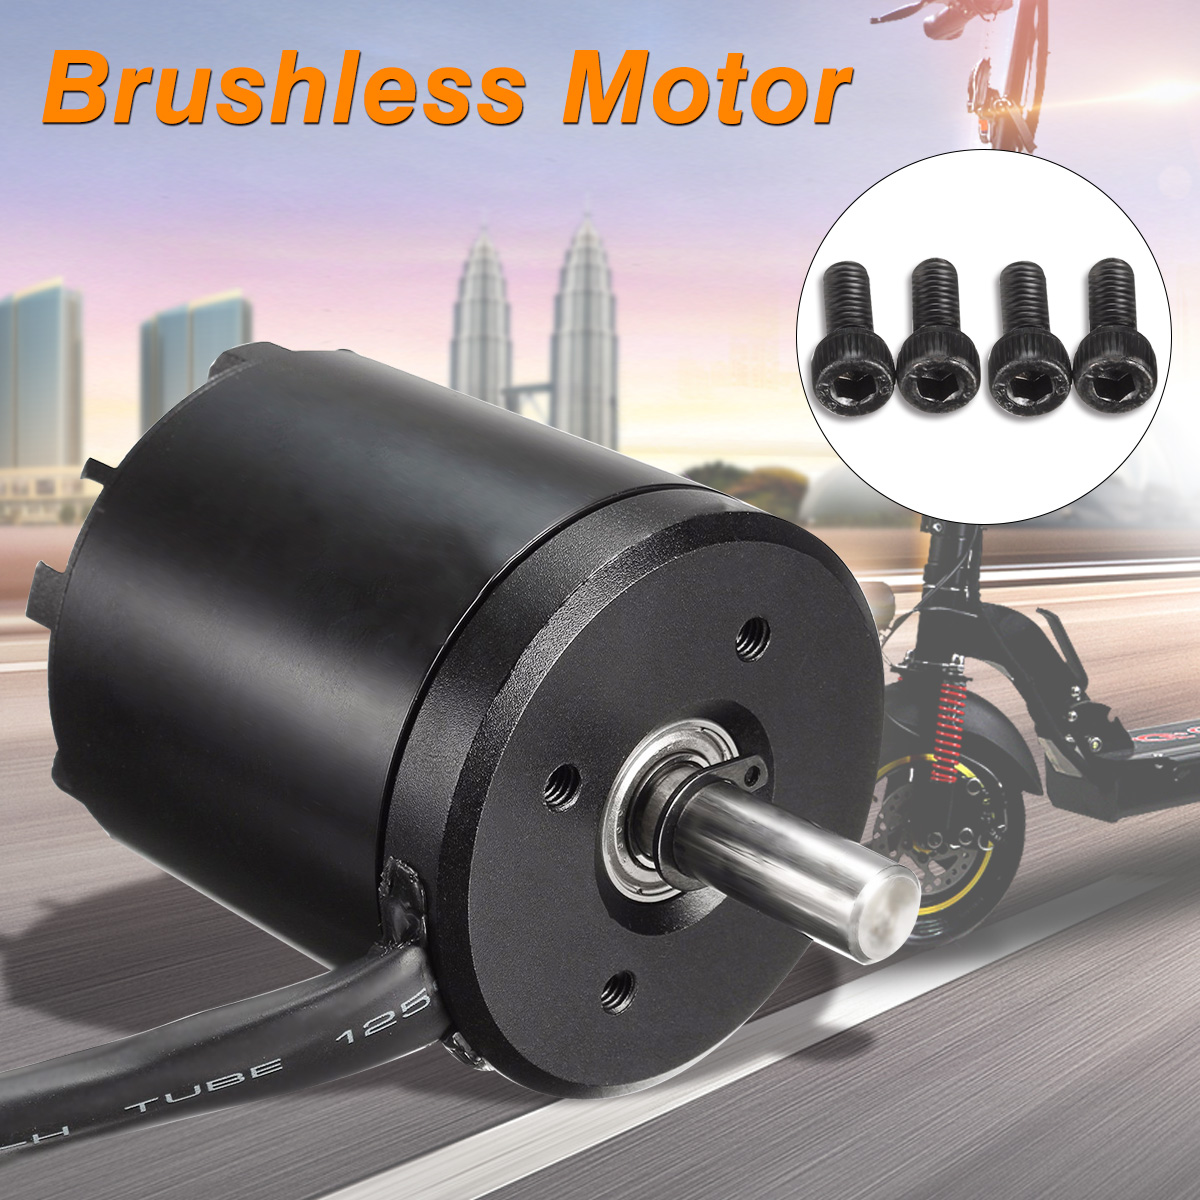 New 2.6KG 3-8S N5065 5065 270KV Brushless Sensored Motor For Electric Skate Scooter Motor Accessories цена